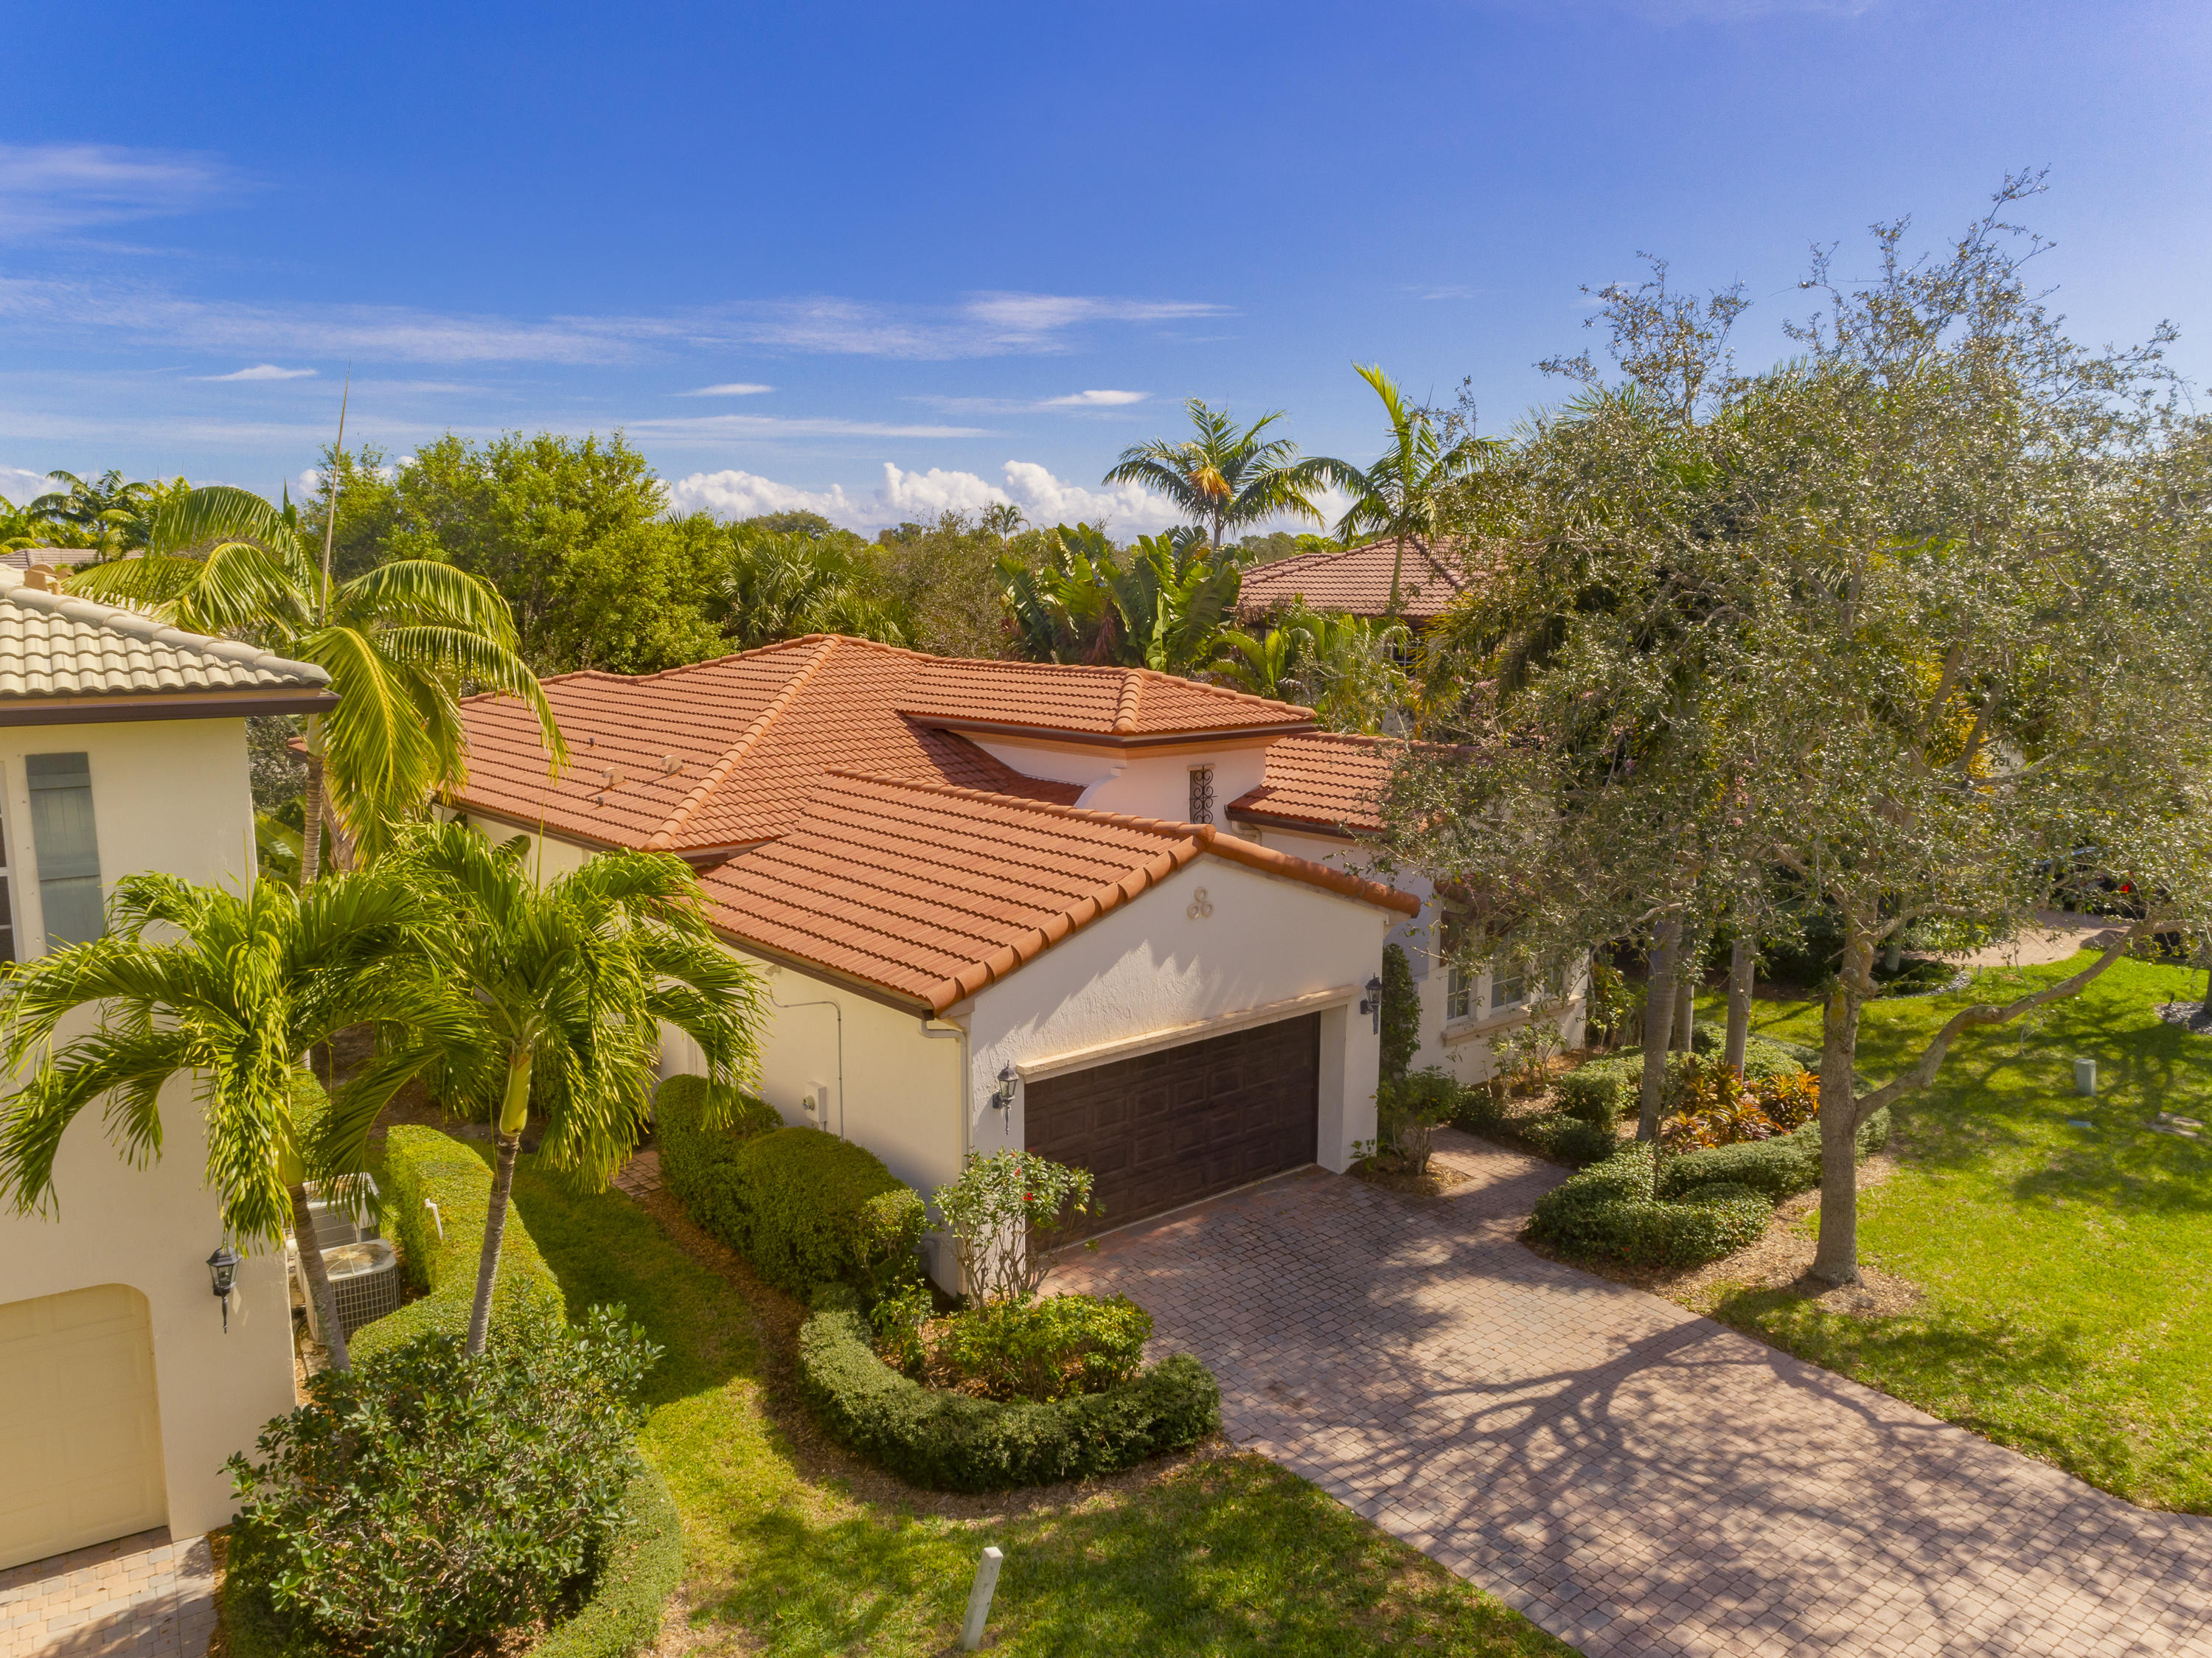 1908 Flower Drive, Palm Beach Gardens, Florida 33410, 3 Bedrooms Bedrooms, ,2 BathroomsBathrooms,Single Family,For Sale,Evergrene,Flower,RX-10505723